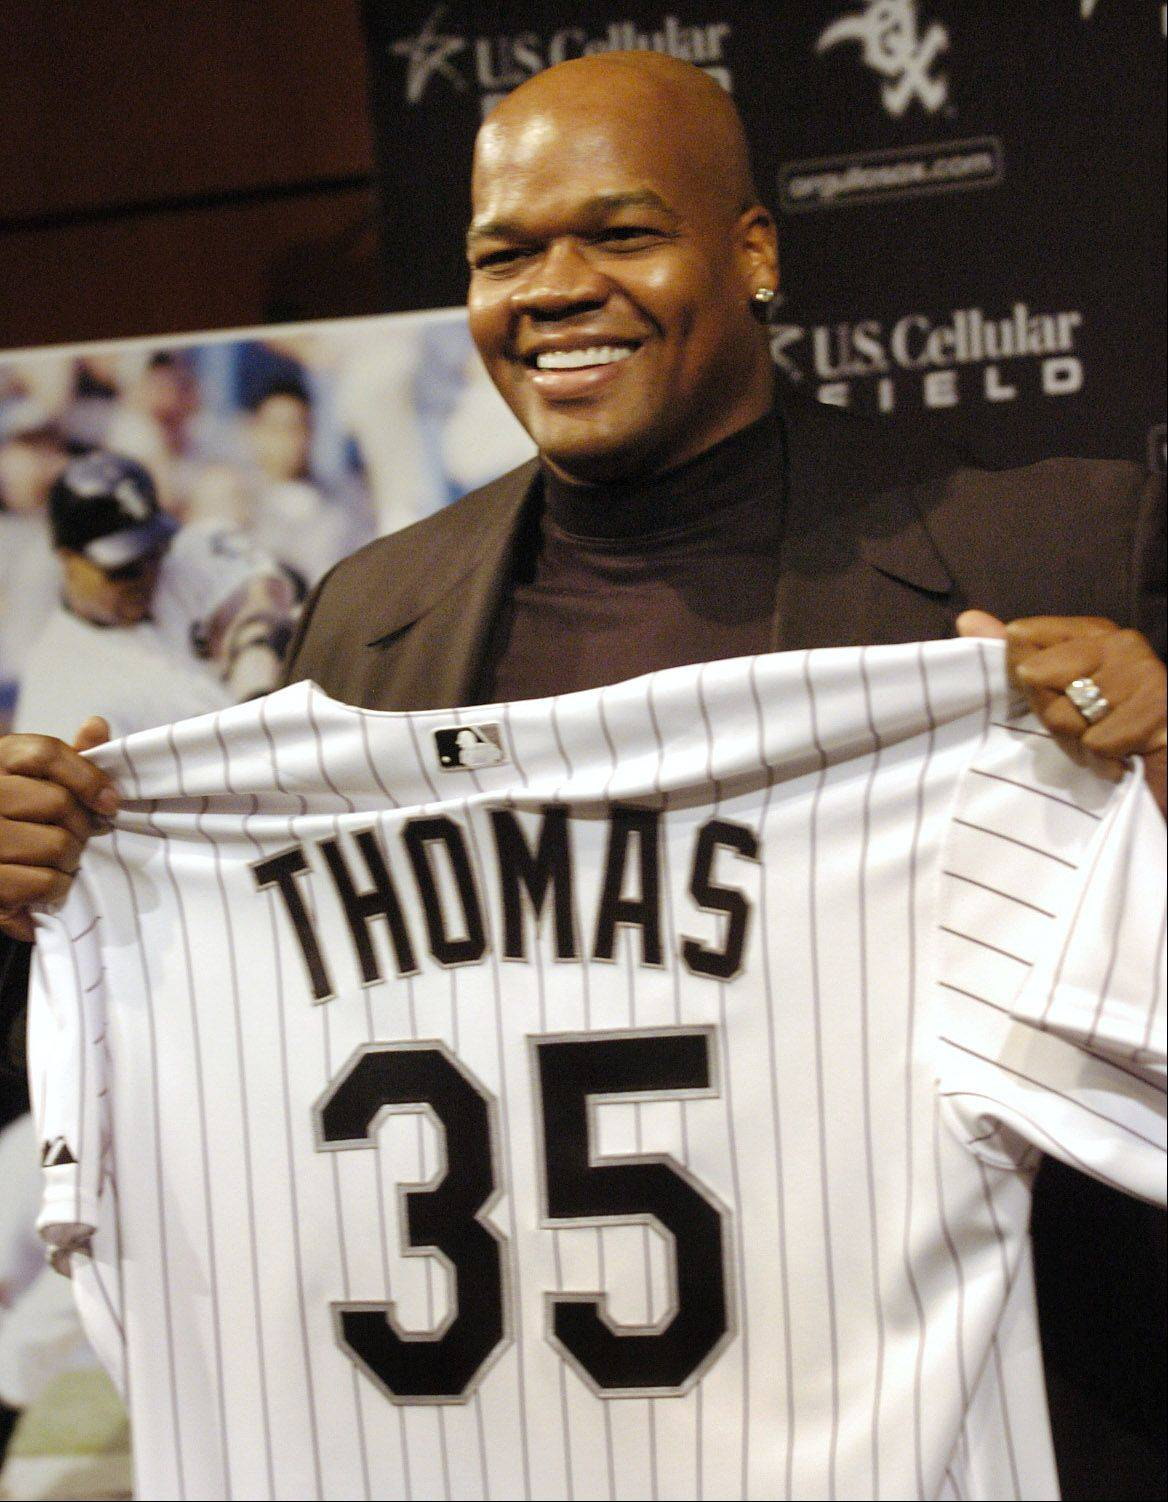 Frank Thomas says he should be first-ballot Hall-of-Famer